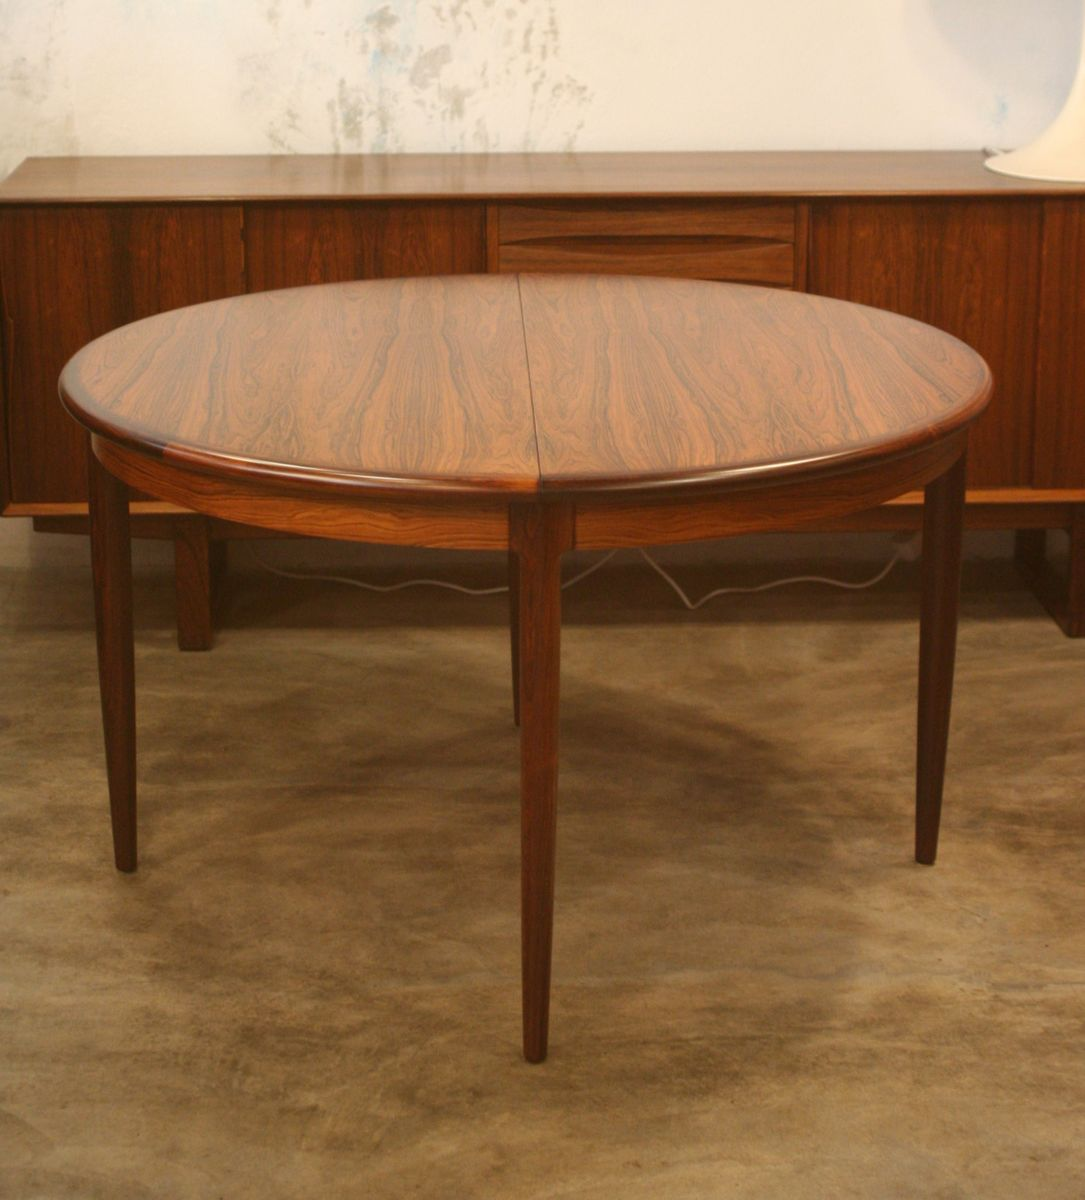 no dining table dining table no 1287 with 2 leaves by harvey probber at 1stdibs dining room